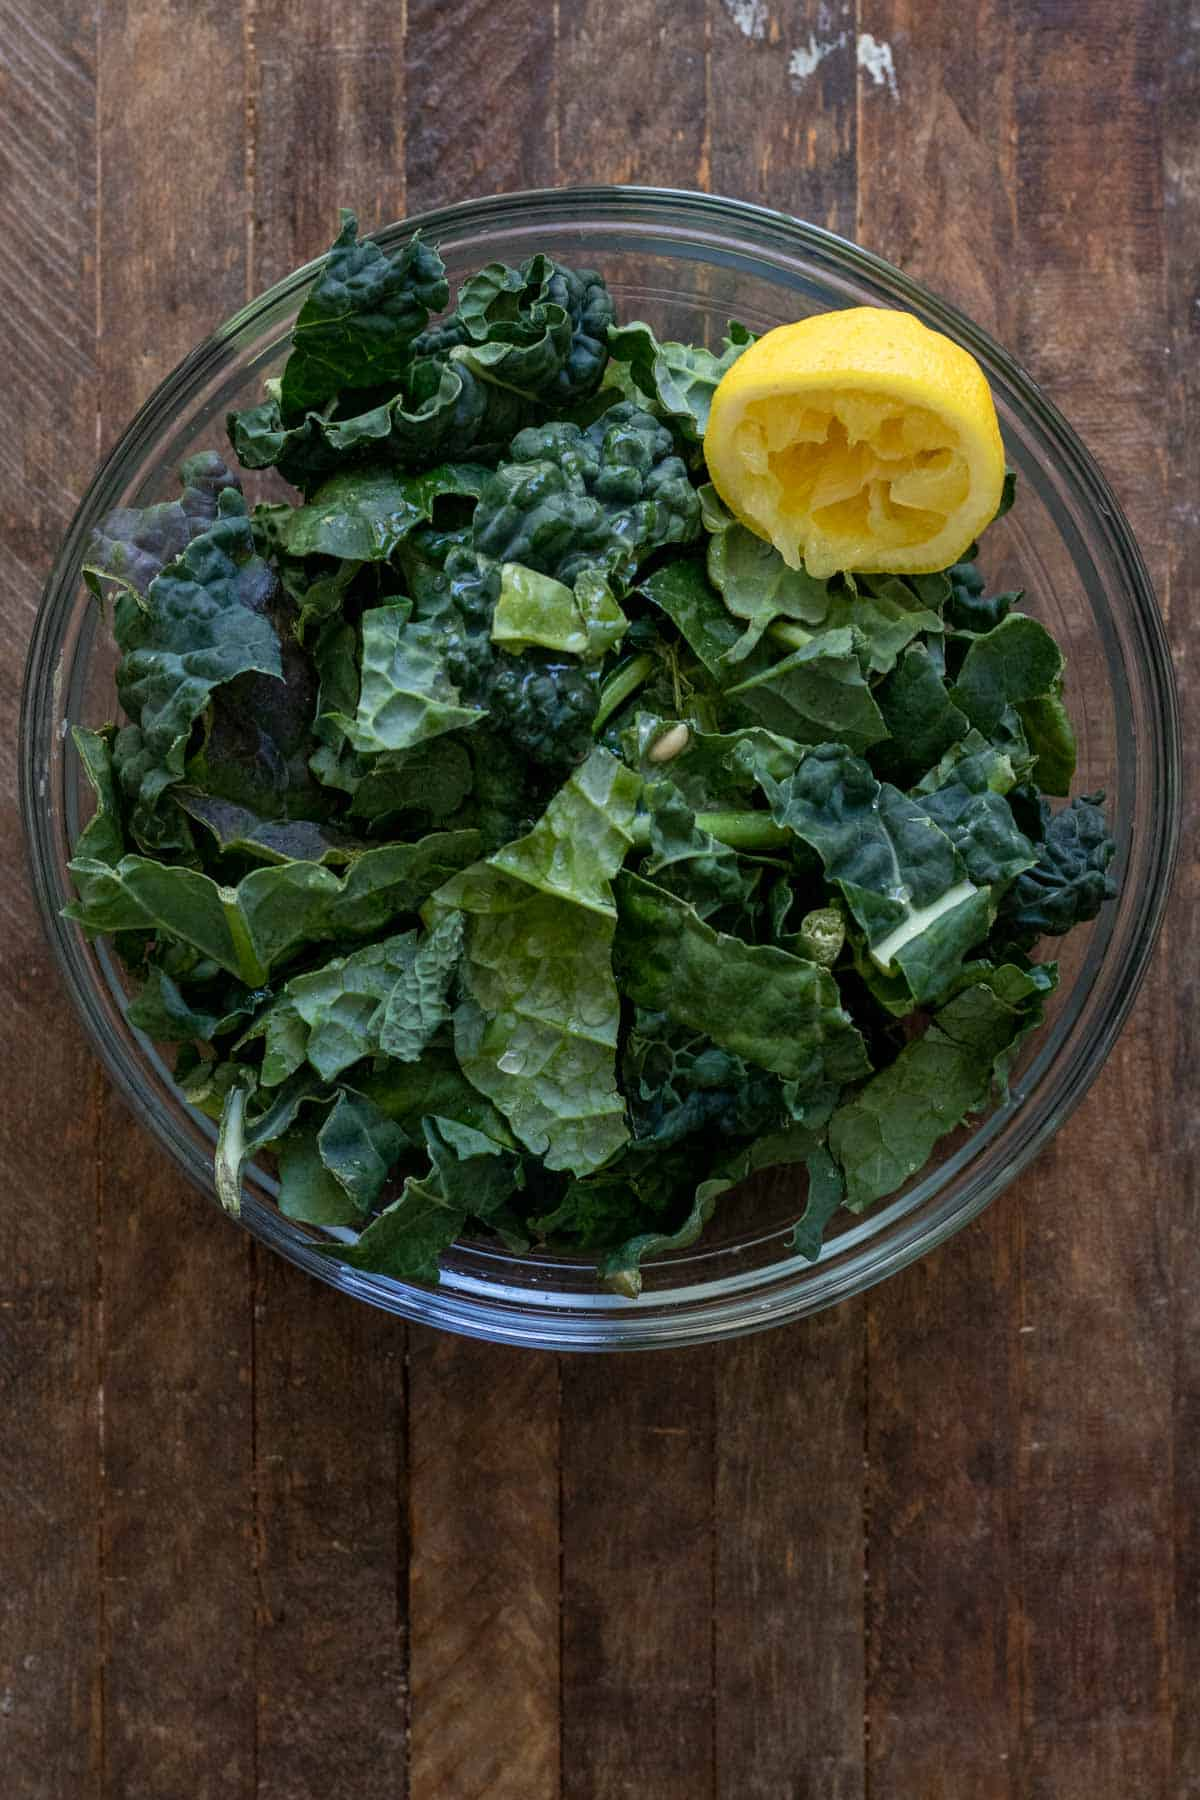 Kale in glass bowl on wooden table with lemon juice squeezed overtop.